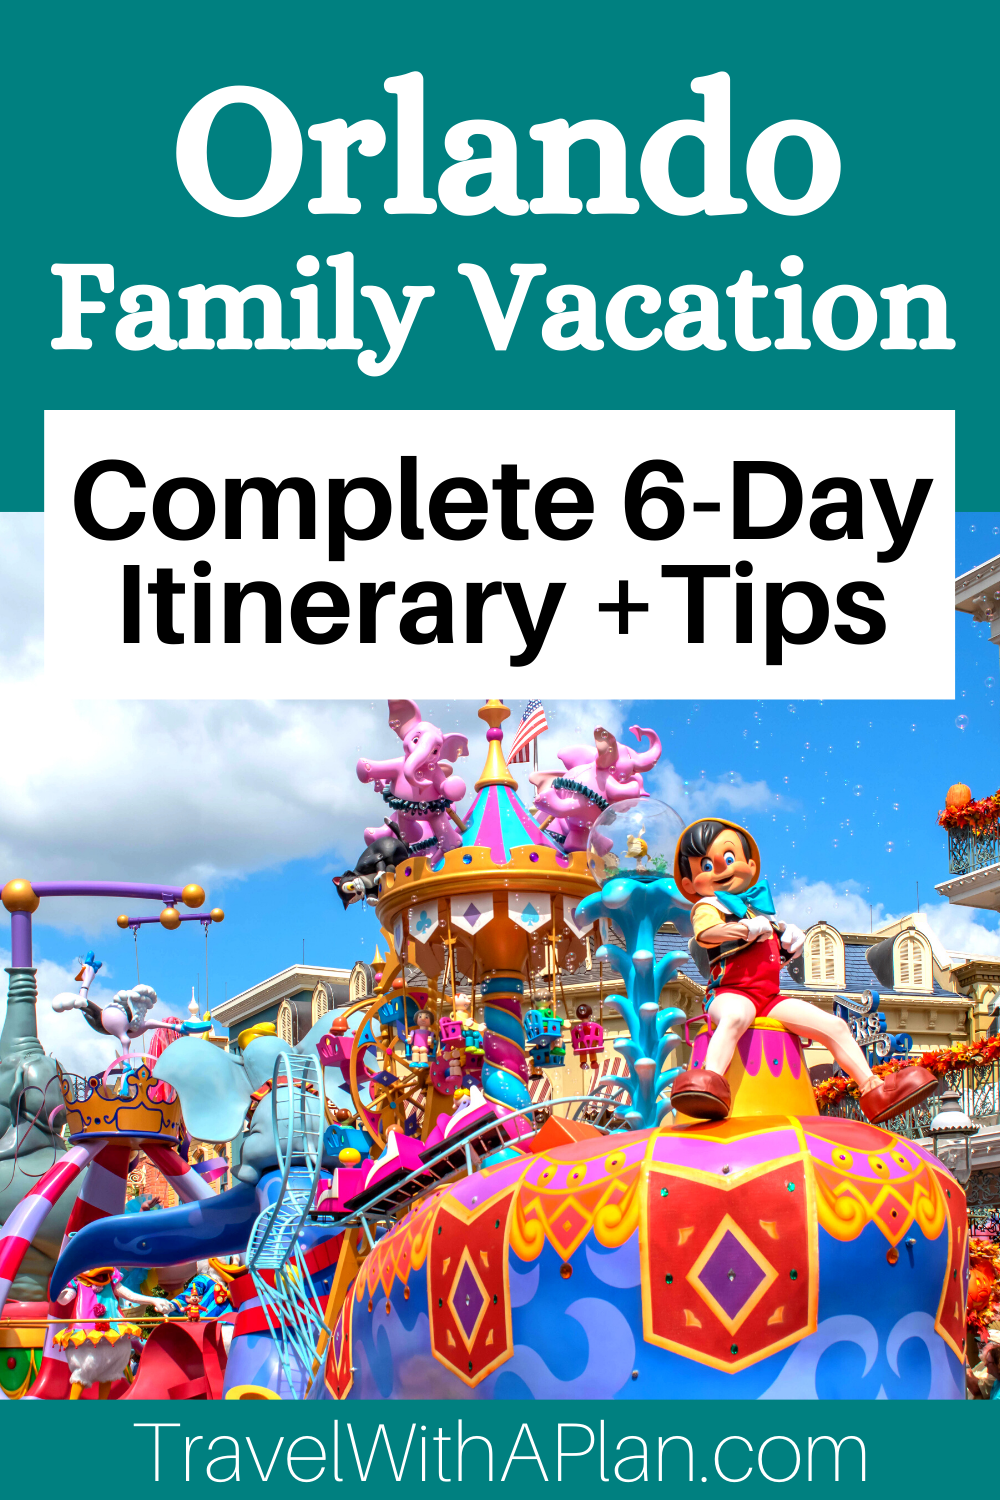 This ultimate guide to visiting Orlando provides a complete 6-day itinerary that includes theme parks and the best Orlando attractions!  Find out where to eat, sleep, and play on the best Orlando family vacation!